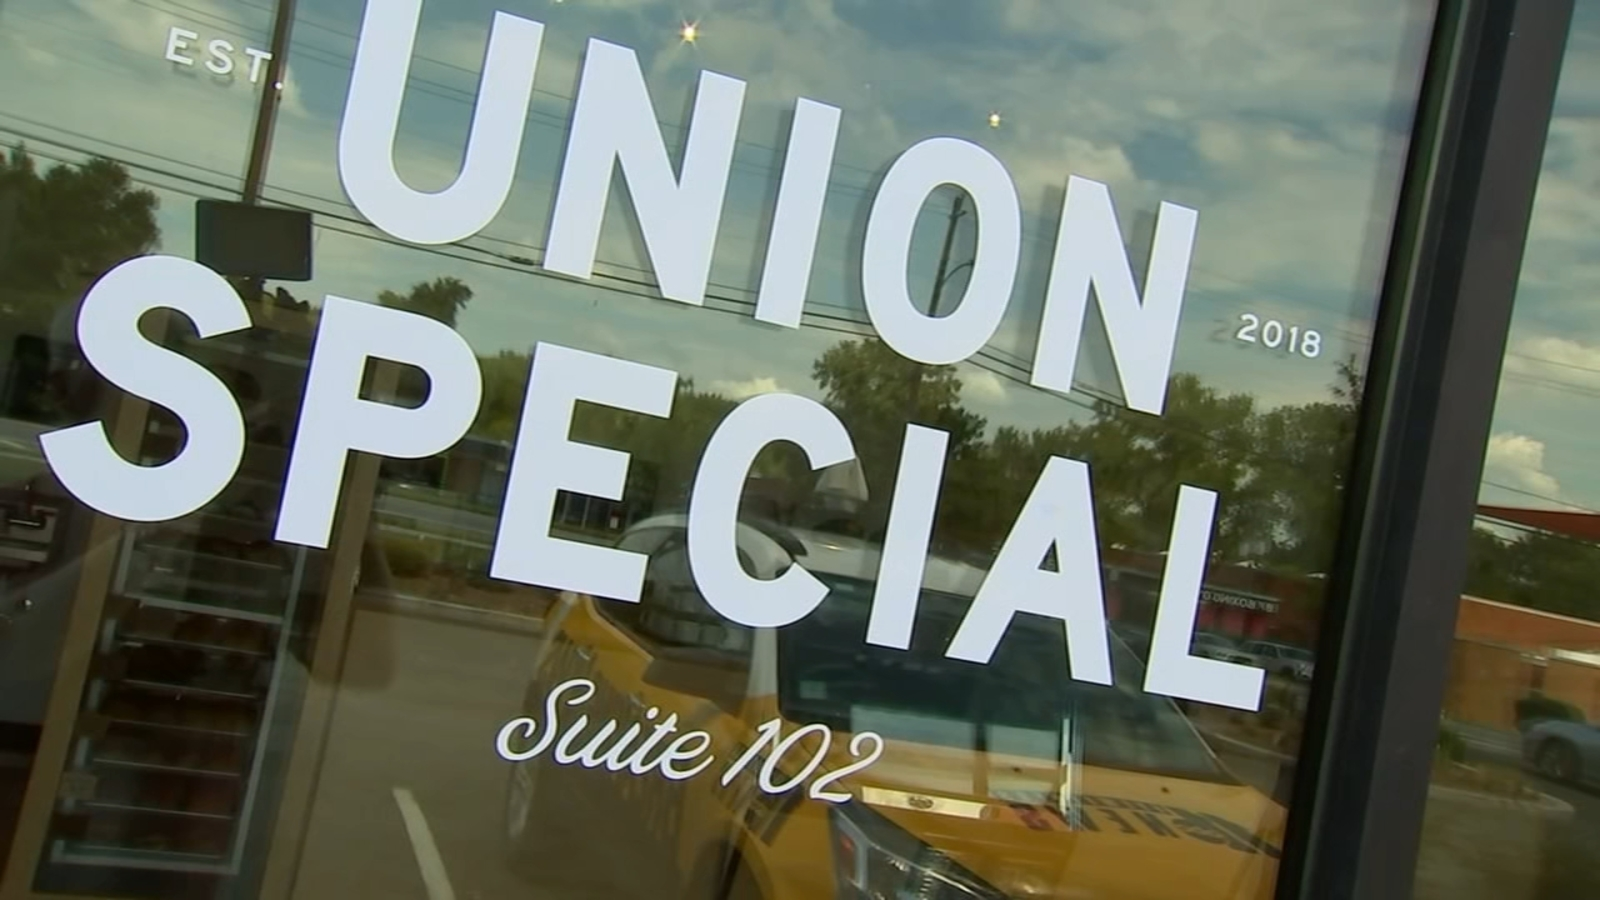 Now Open: Union Special Bread crafts handmade breads, croissants, and pastries in Raleigh